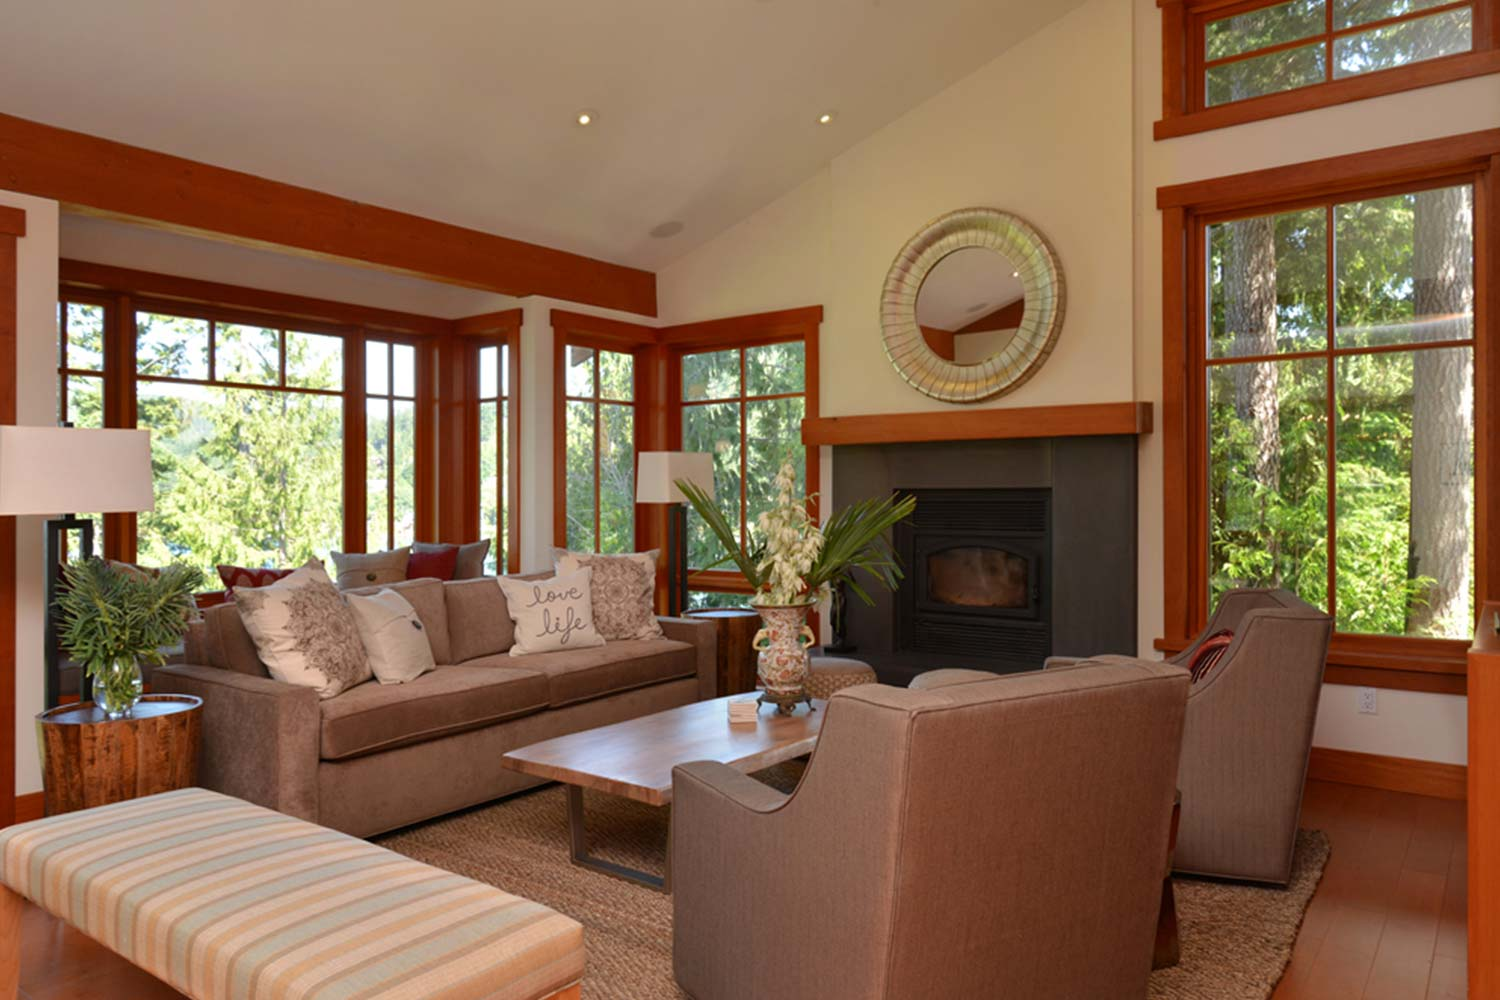 The living room of this high-end rental home in Pender Harbour features a wood burner fire and floor-to-ceiling windows.